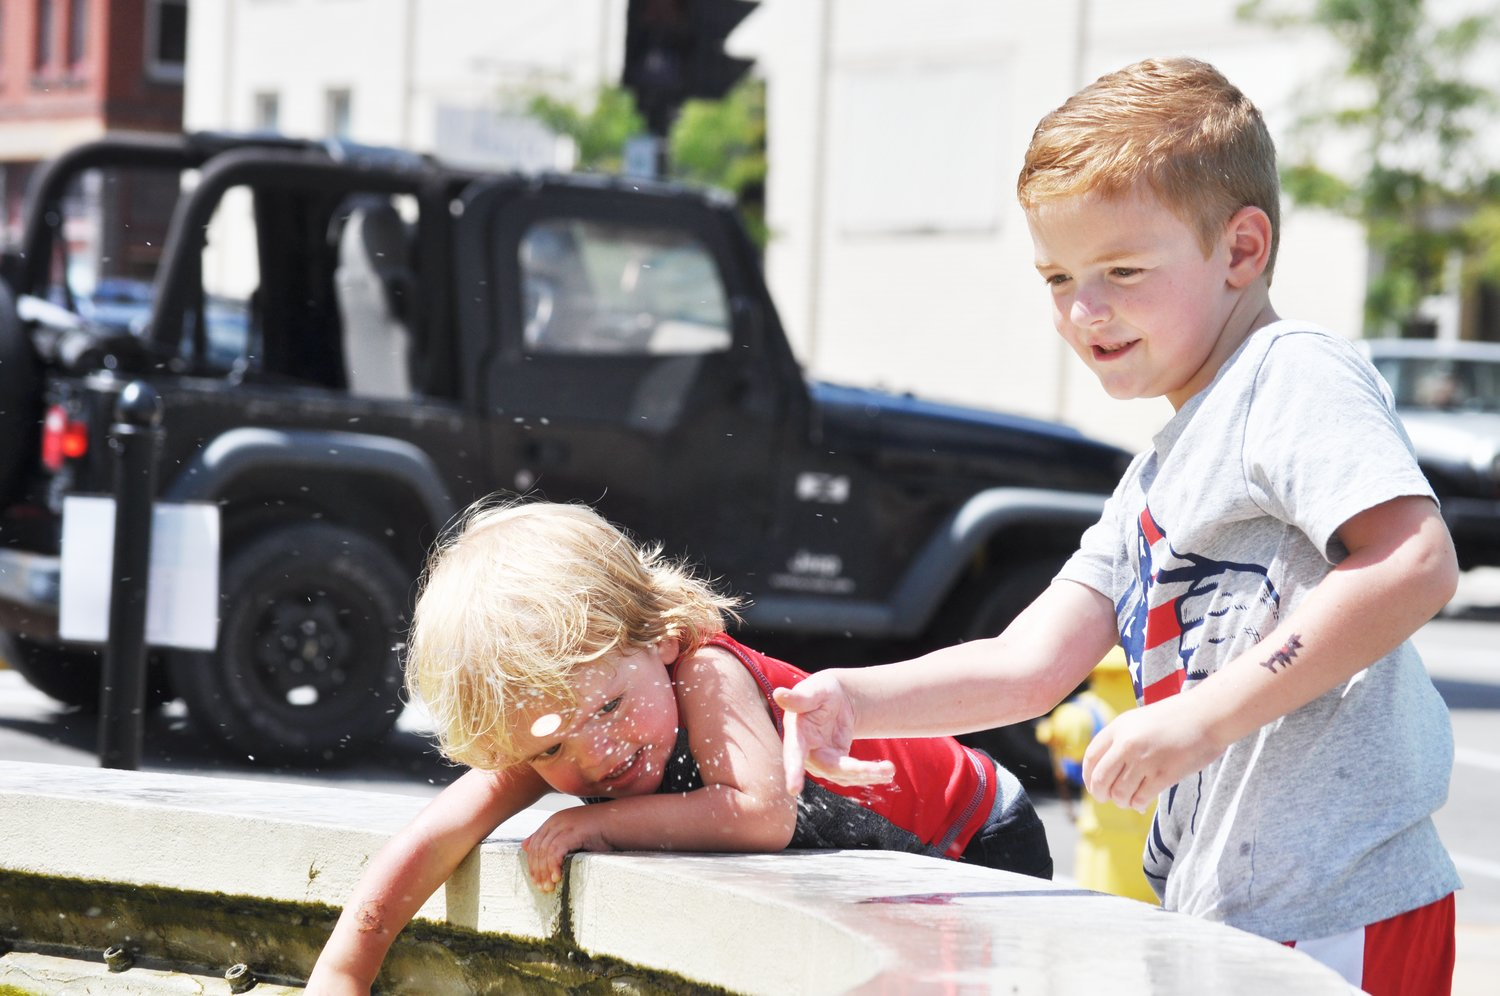 Aden Beck, 6, right, and his brother, Mathis, 2, play in the fountain at Marie Canine Plaza during Lunch on the Plaza 2.0 Friday.